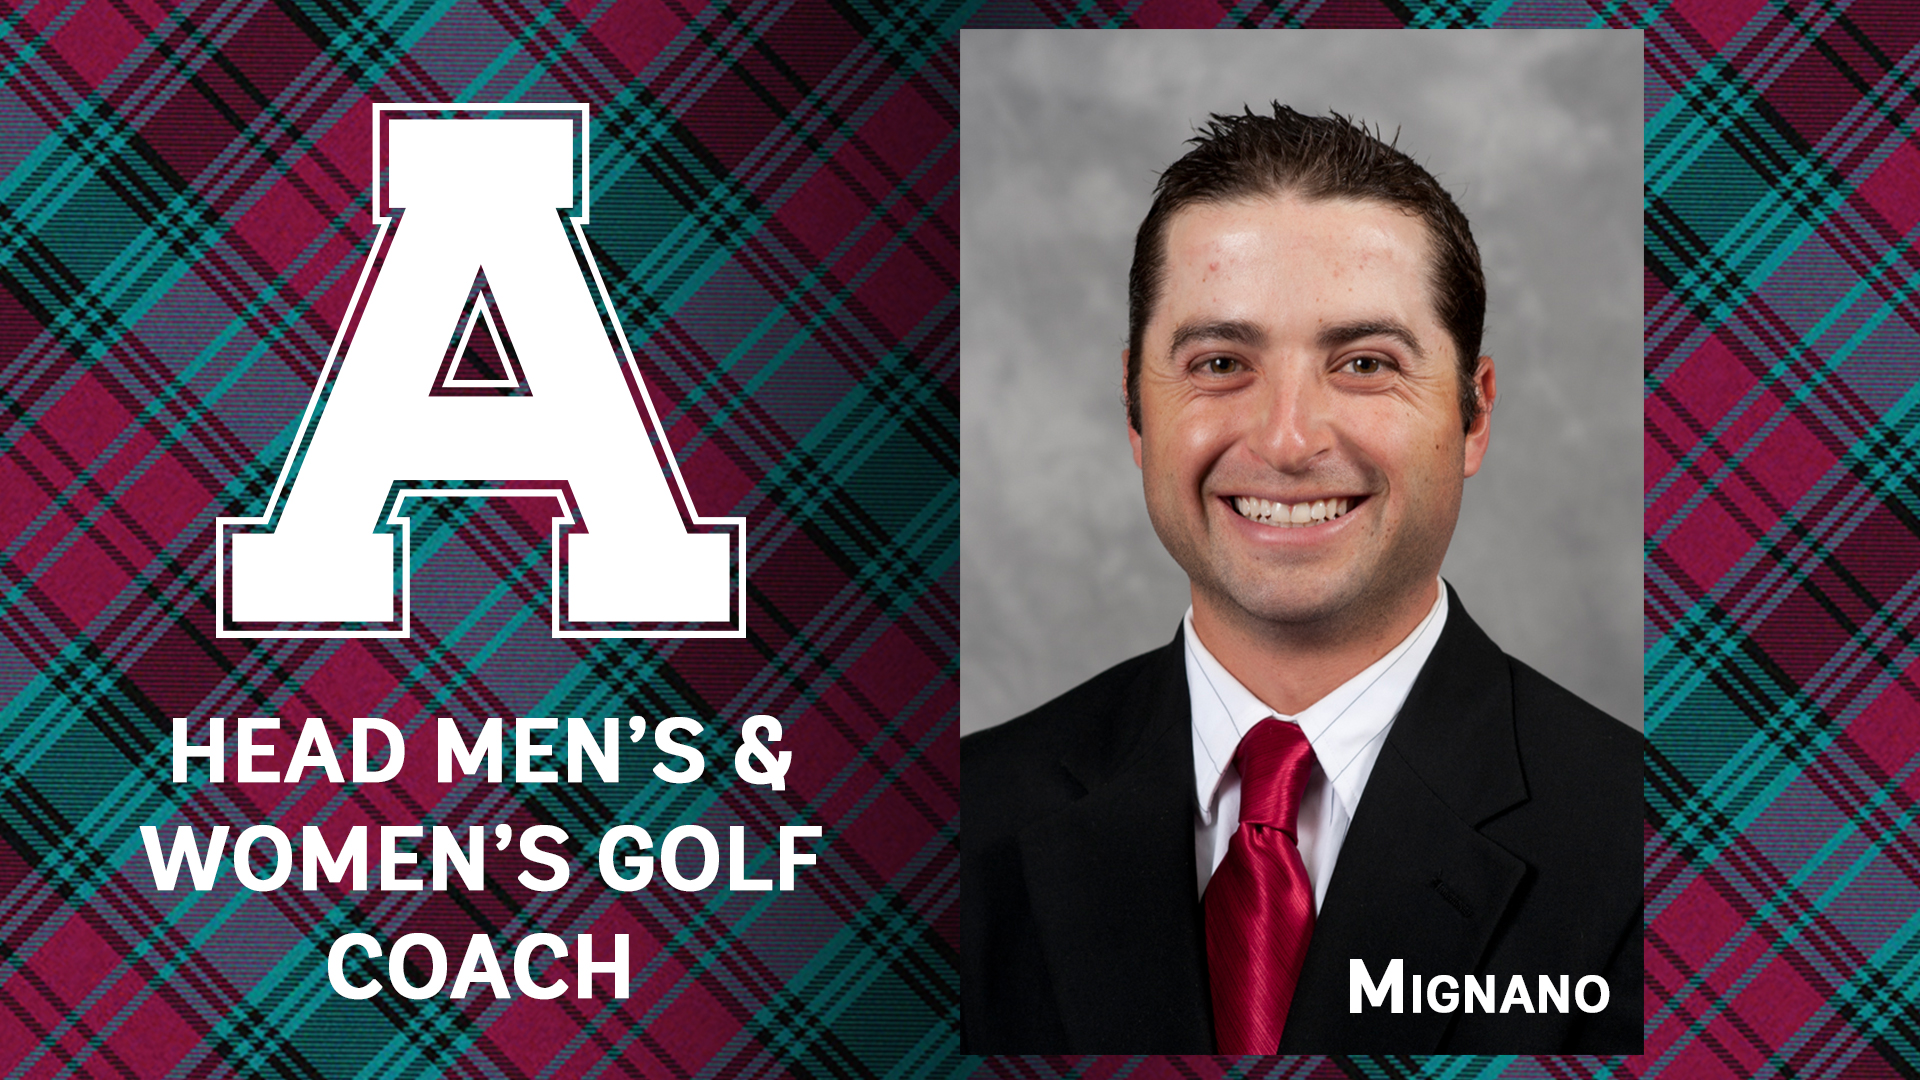 Scots Tab Mignano to Lead Golf Program